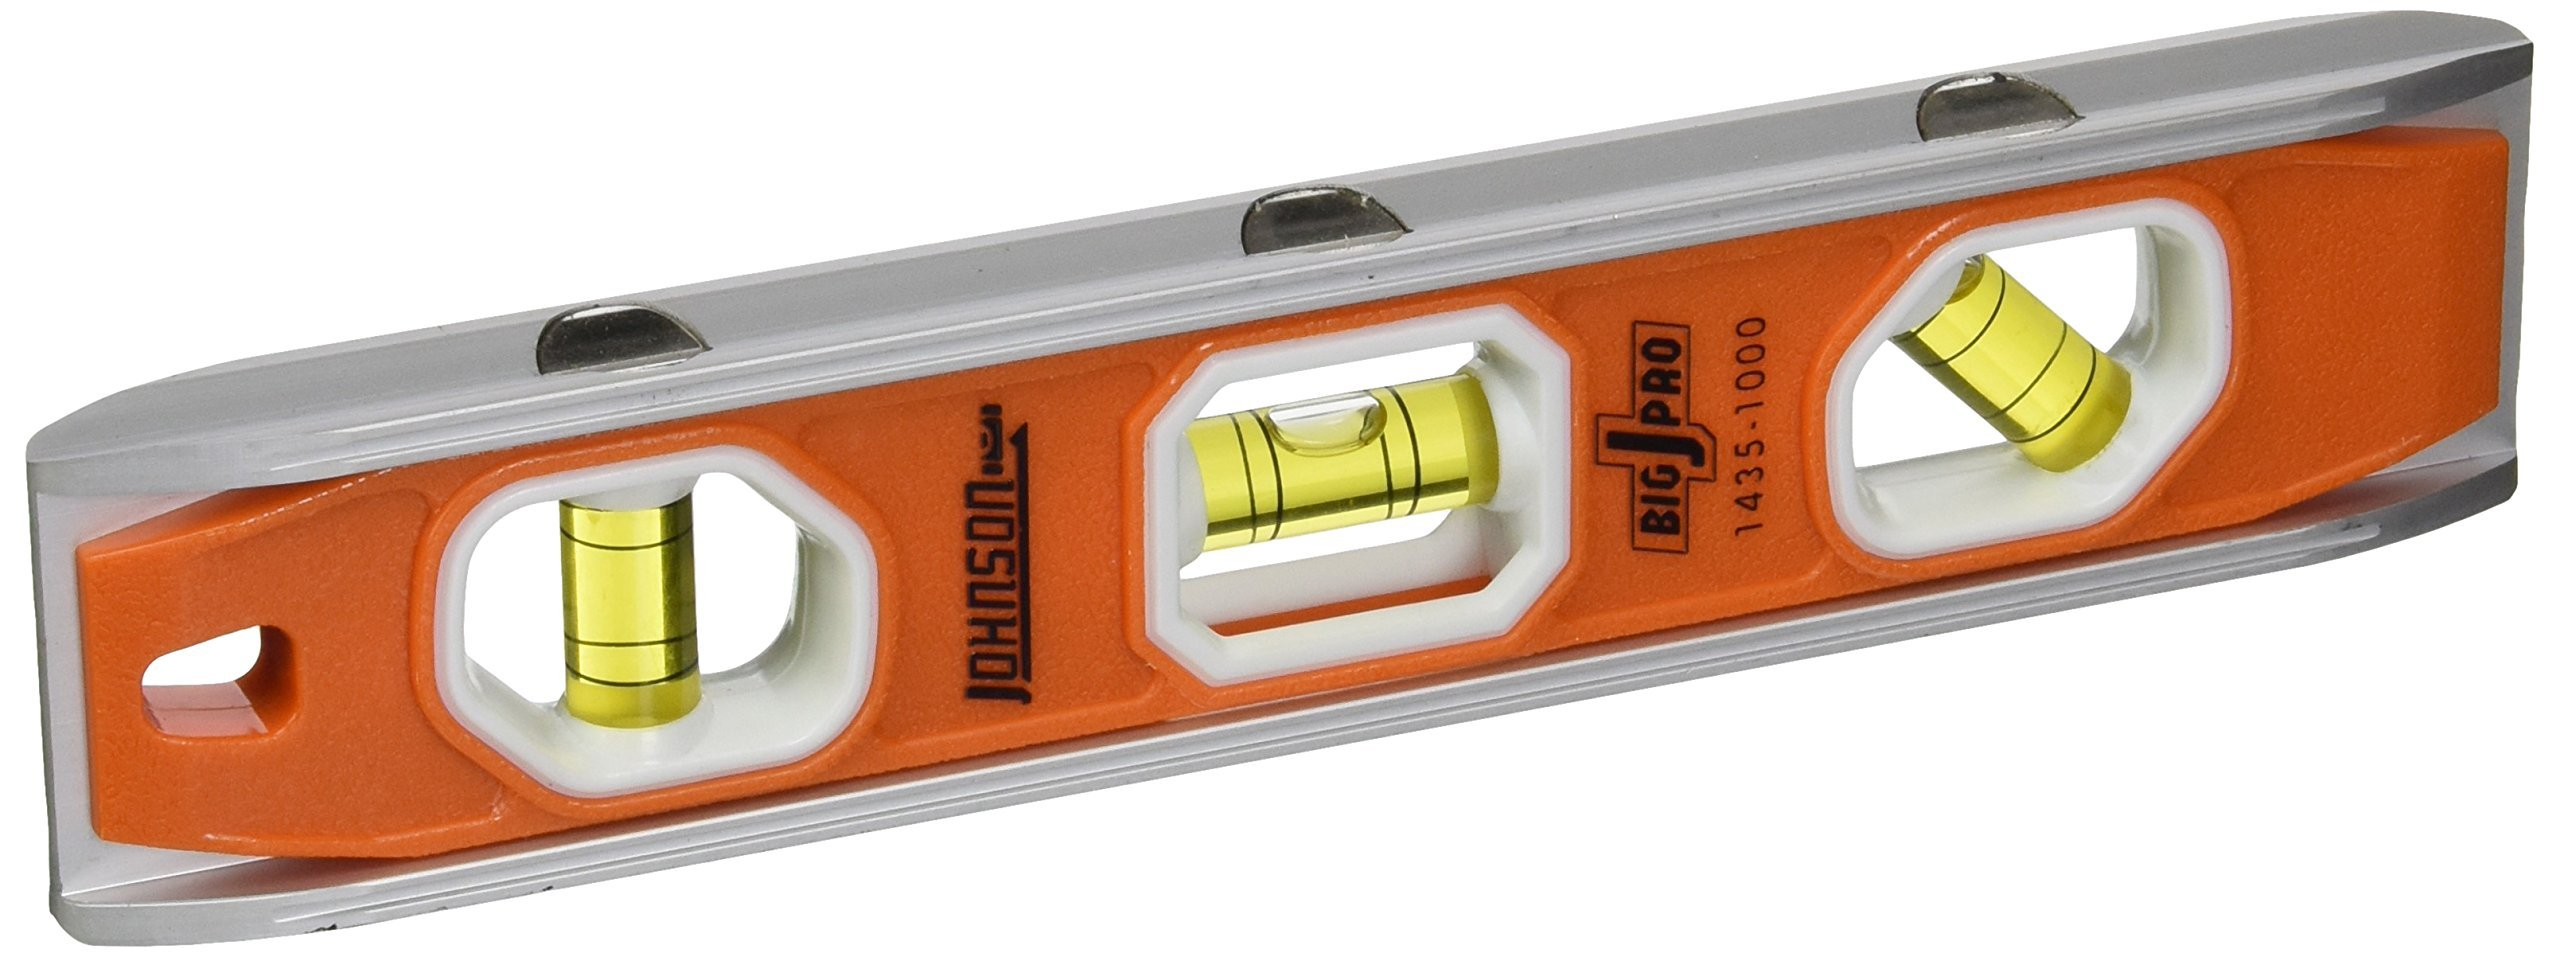 Johnson Level & Tool 211310 Professional Torpedo Level